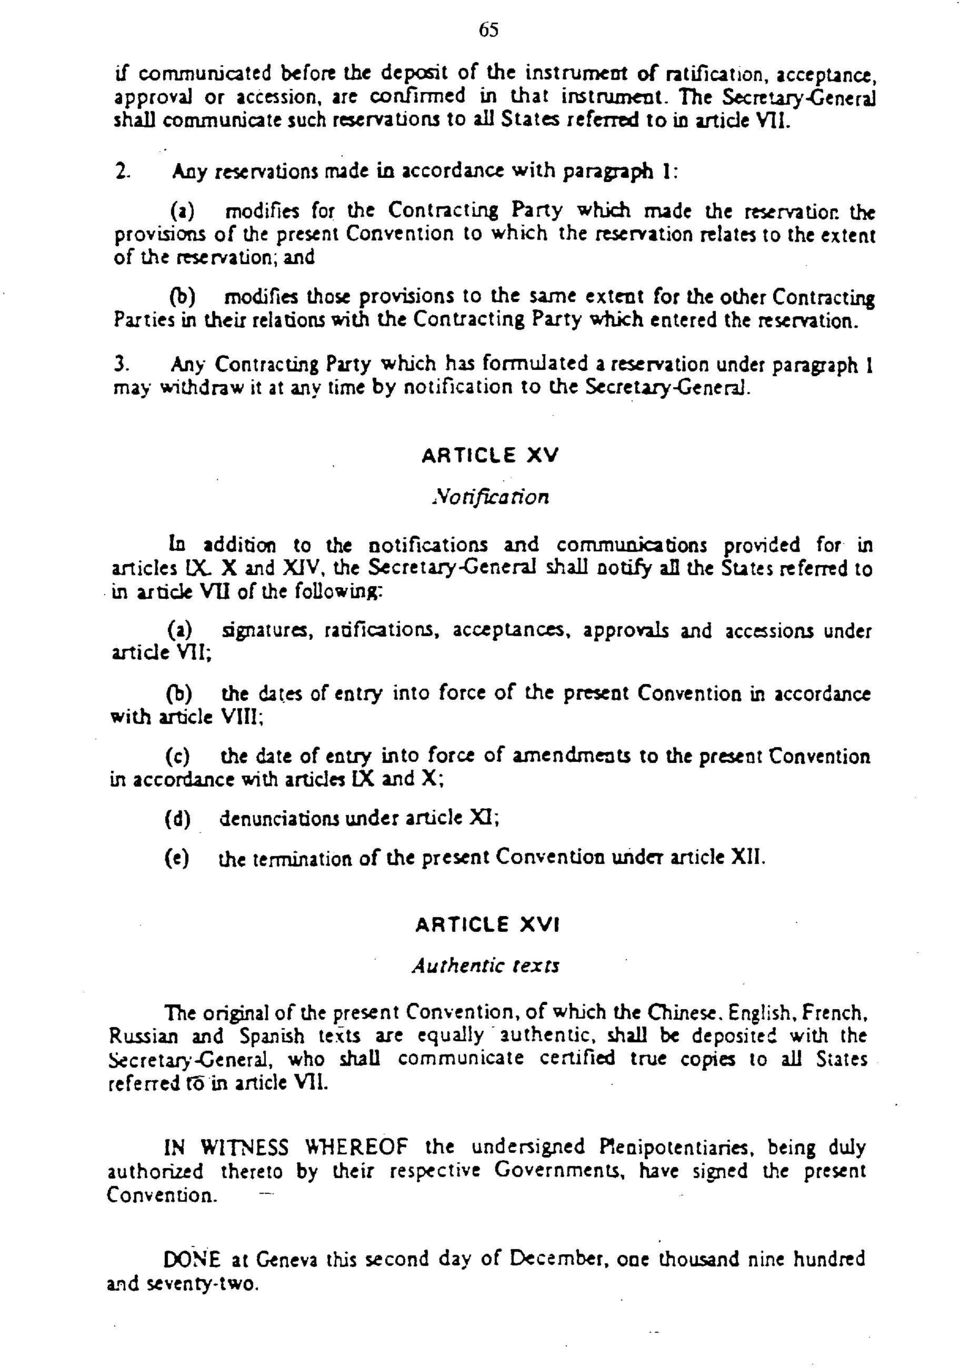 Any reservations made in accordance with paragraph 1: (a) modifies for the Contracting Party which made the reservation the provisions of the present Convention to which the reservation relates to